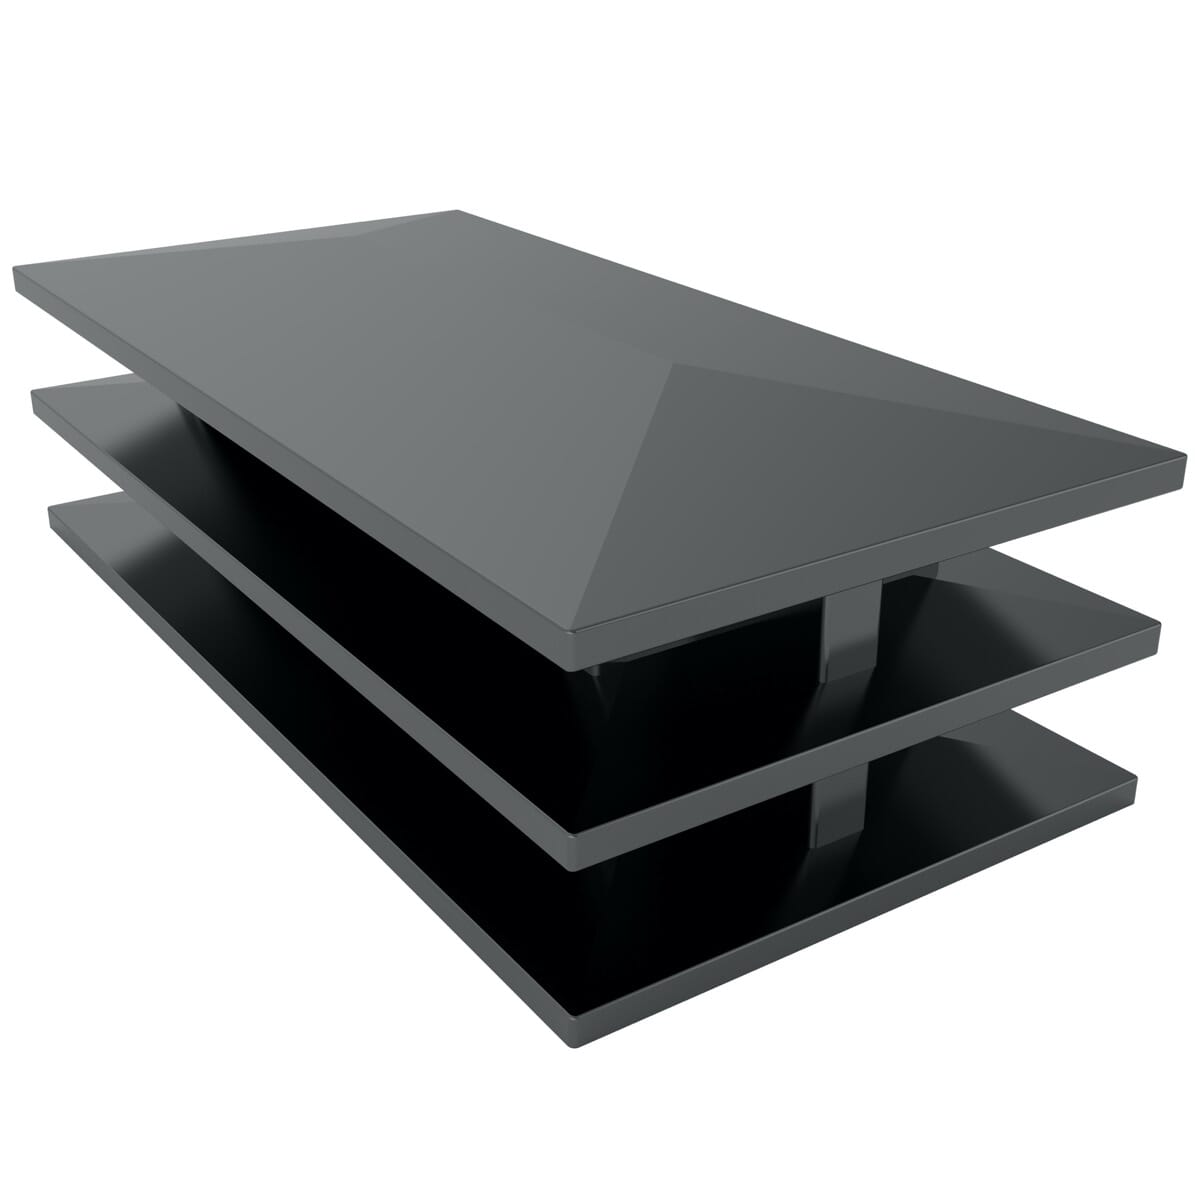 20 x 40mm Lightweight Rectangular Inserts - Black PE